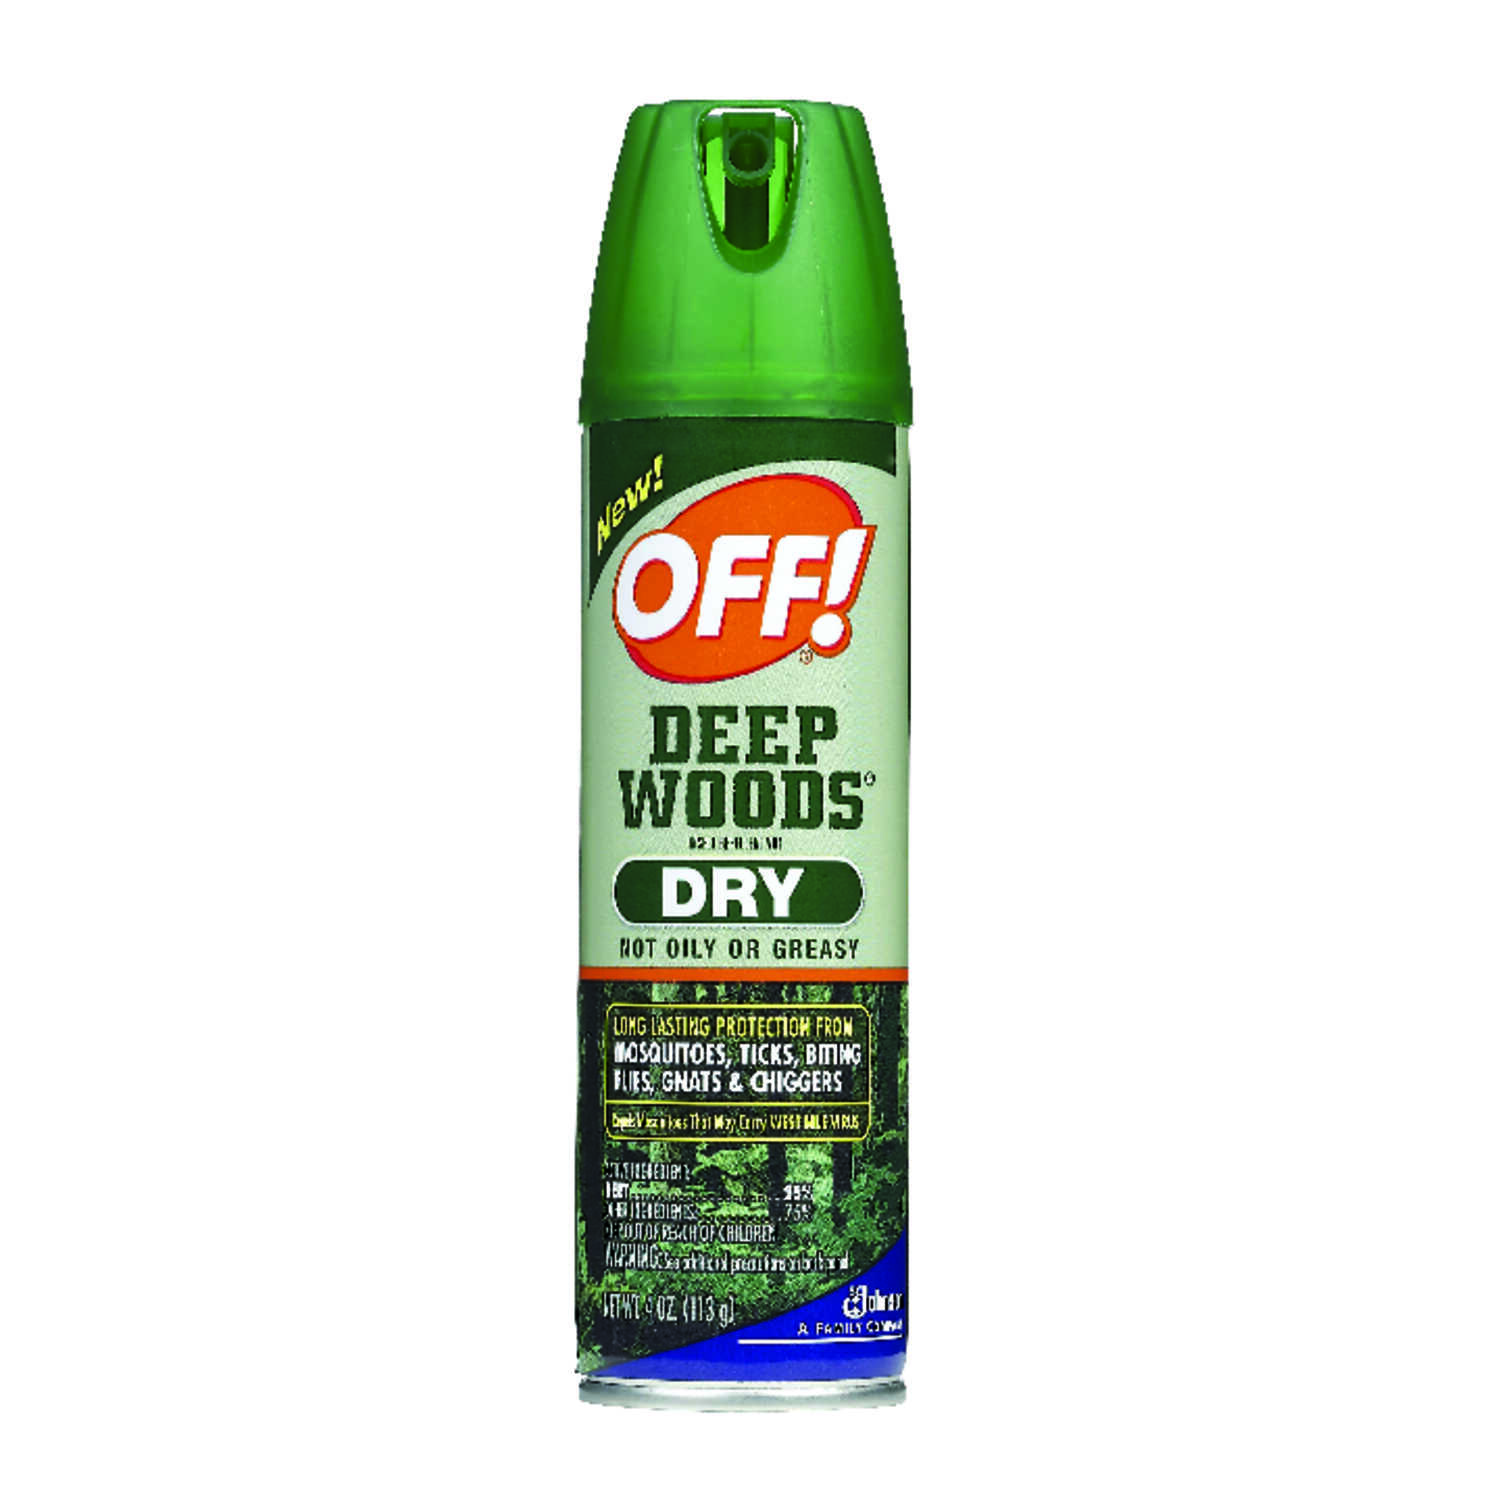 Deep Woods OFF!  Liquid  For Mosquitoes, Flies, Gnats, Mosquitos, Fleas, Flies, Gnats 4 oz. Insect R